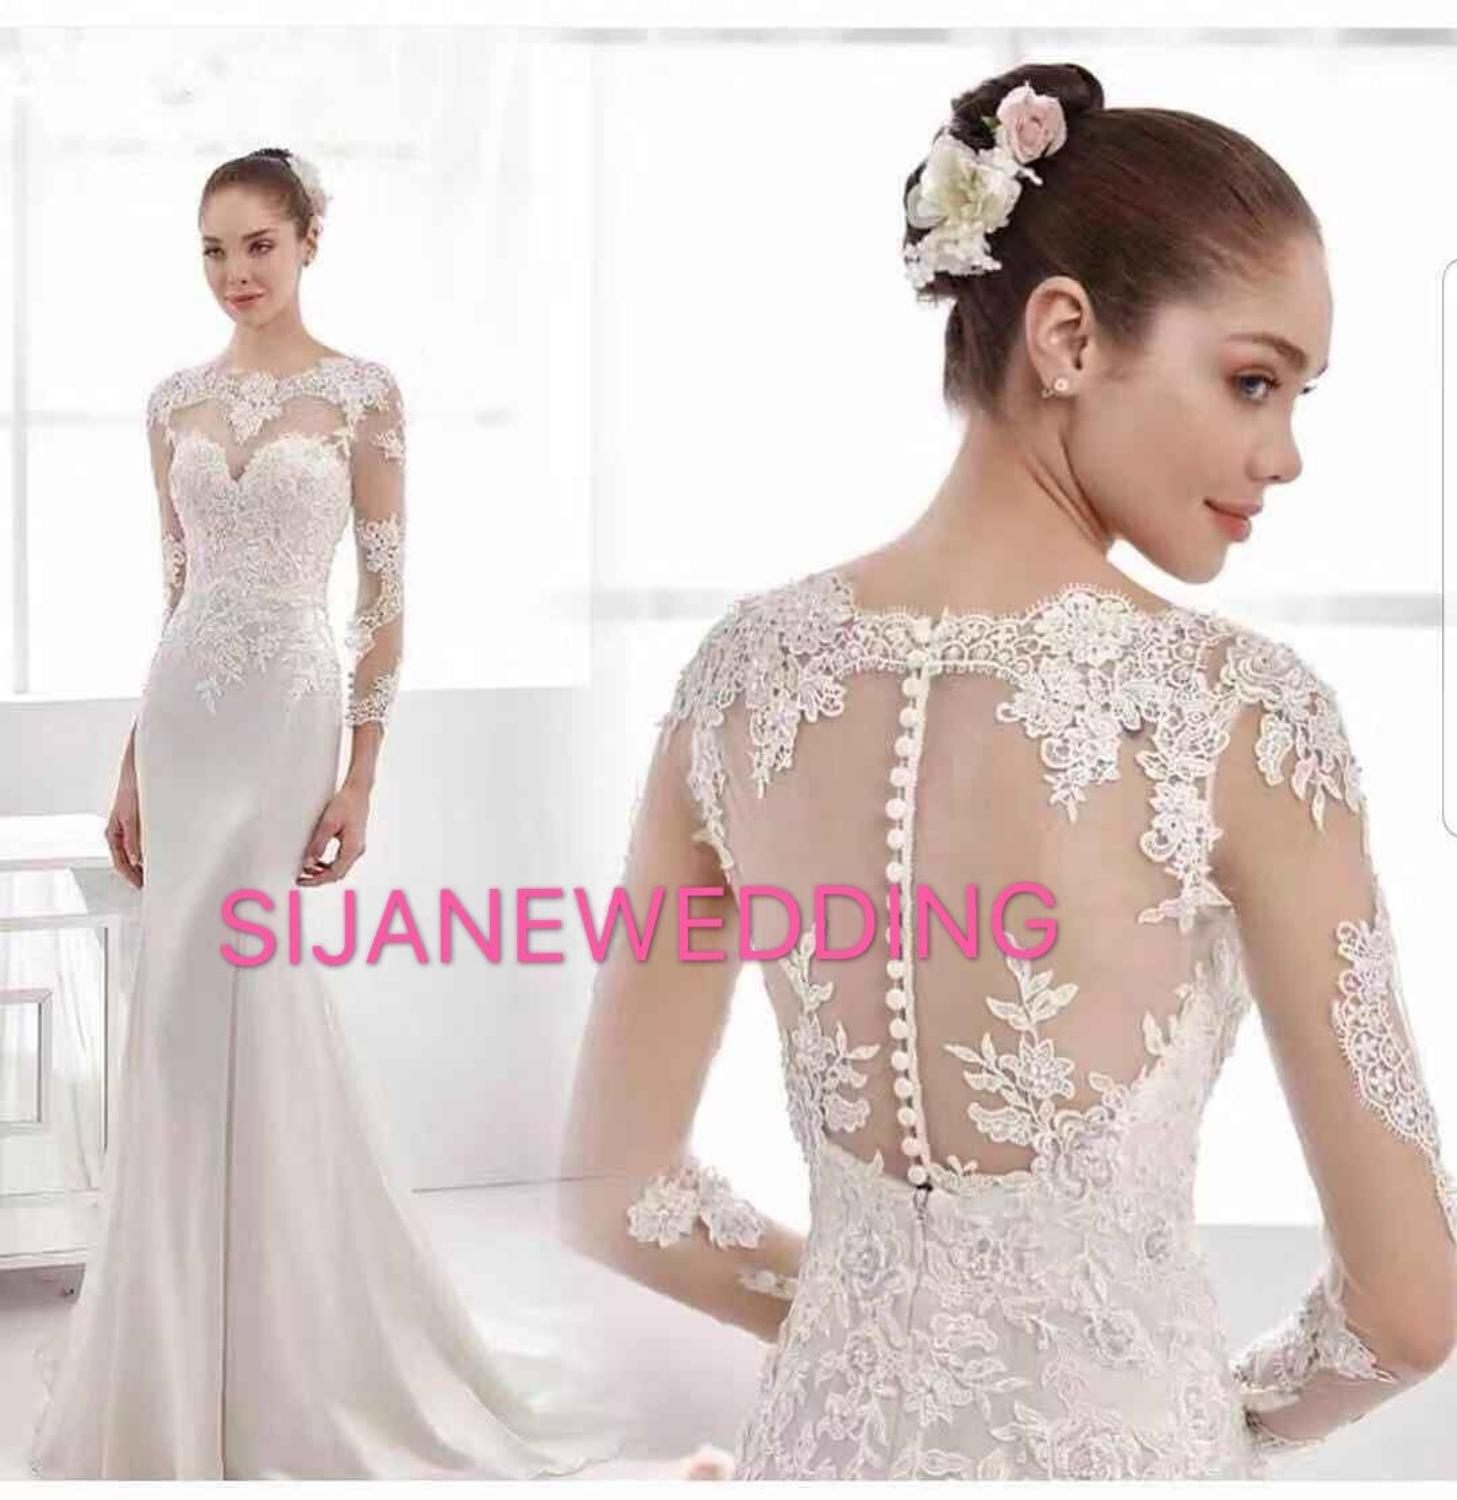 Wedding Dress Vestidos De Noiva Sheath Lace Wedding Party dress528